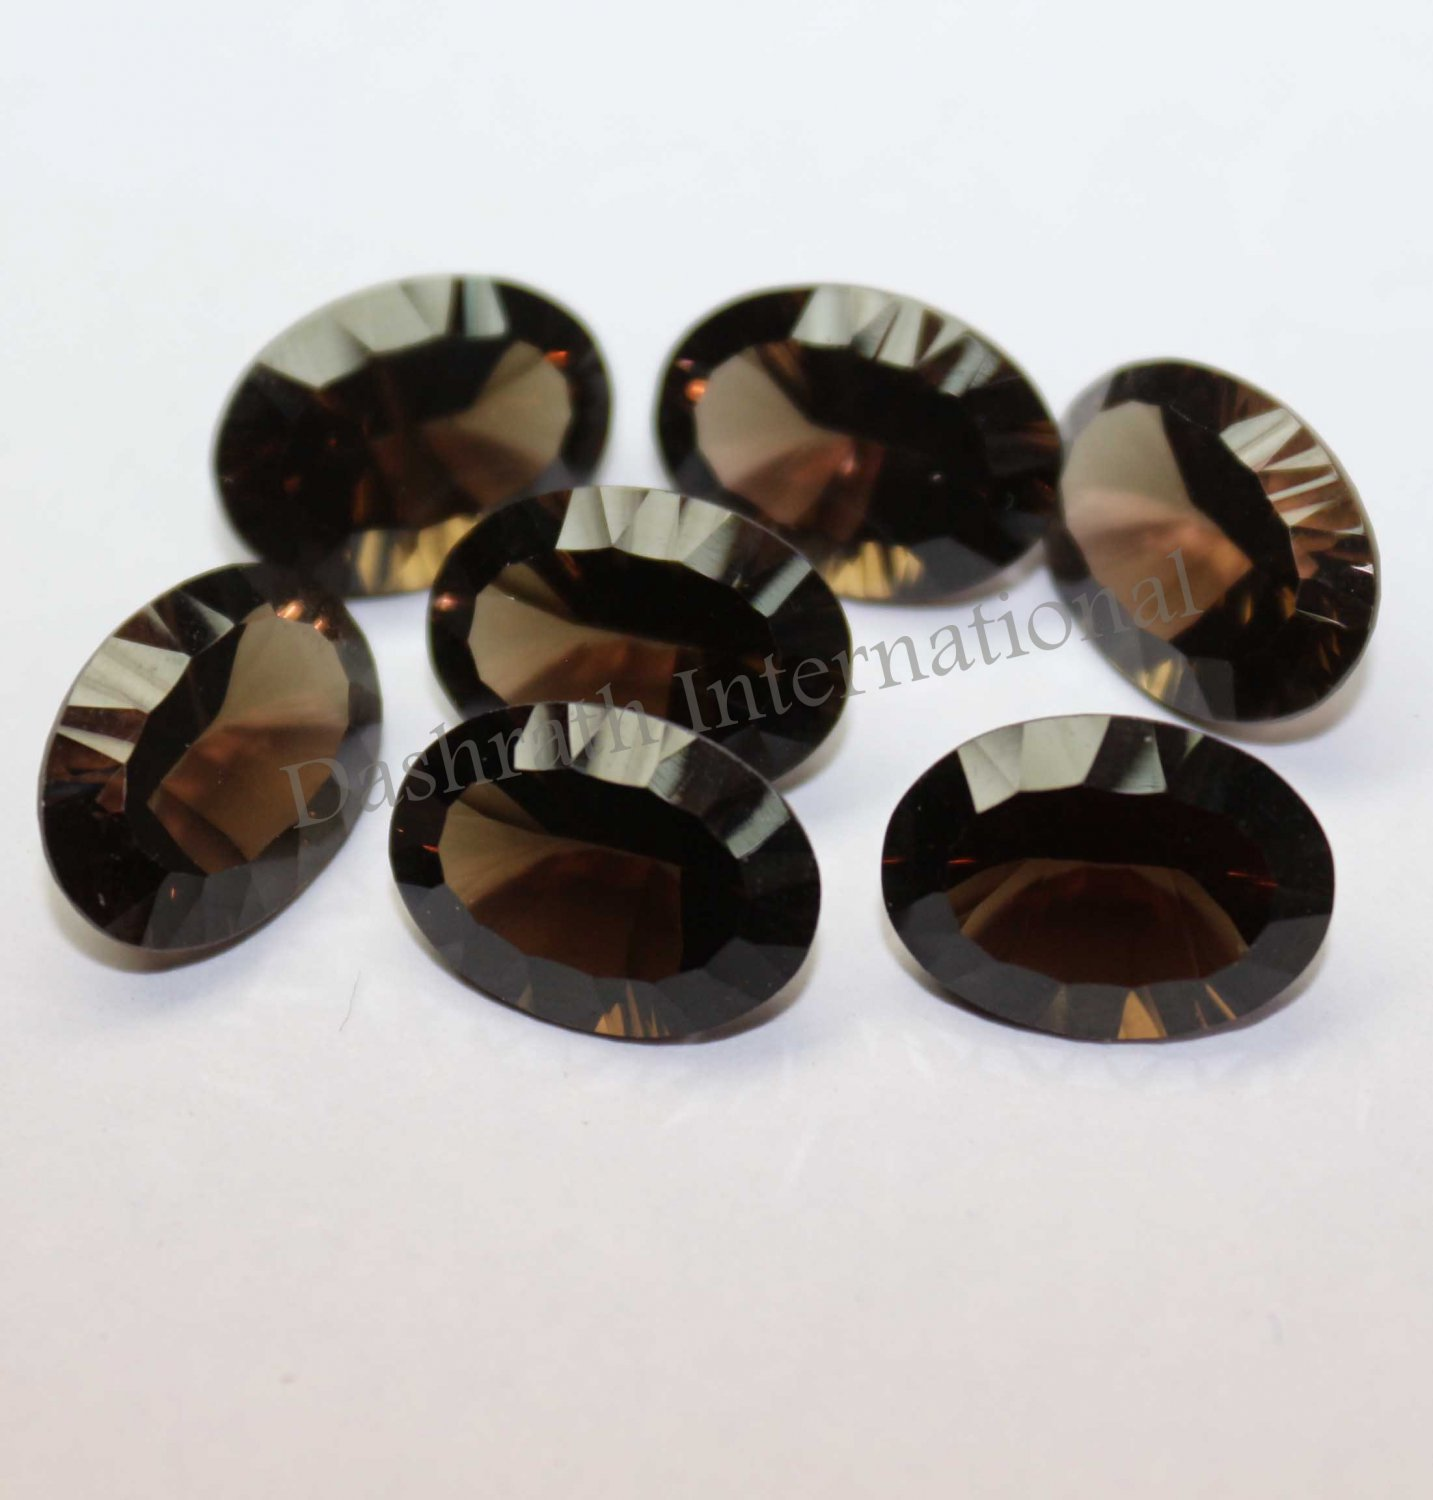 10x12mm Natural Smoky Quartz Concave Cut  Oval  2 Piece (1 Pair) (SI) Top Quality  Loose Gemstone